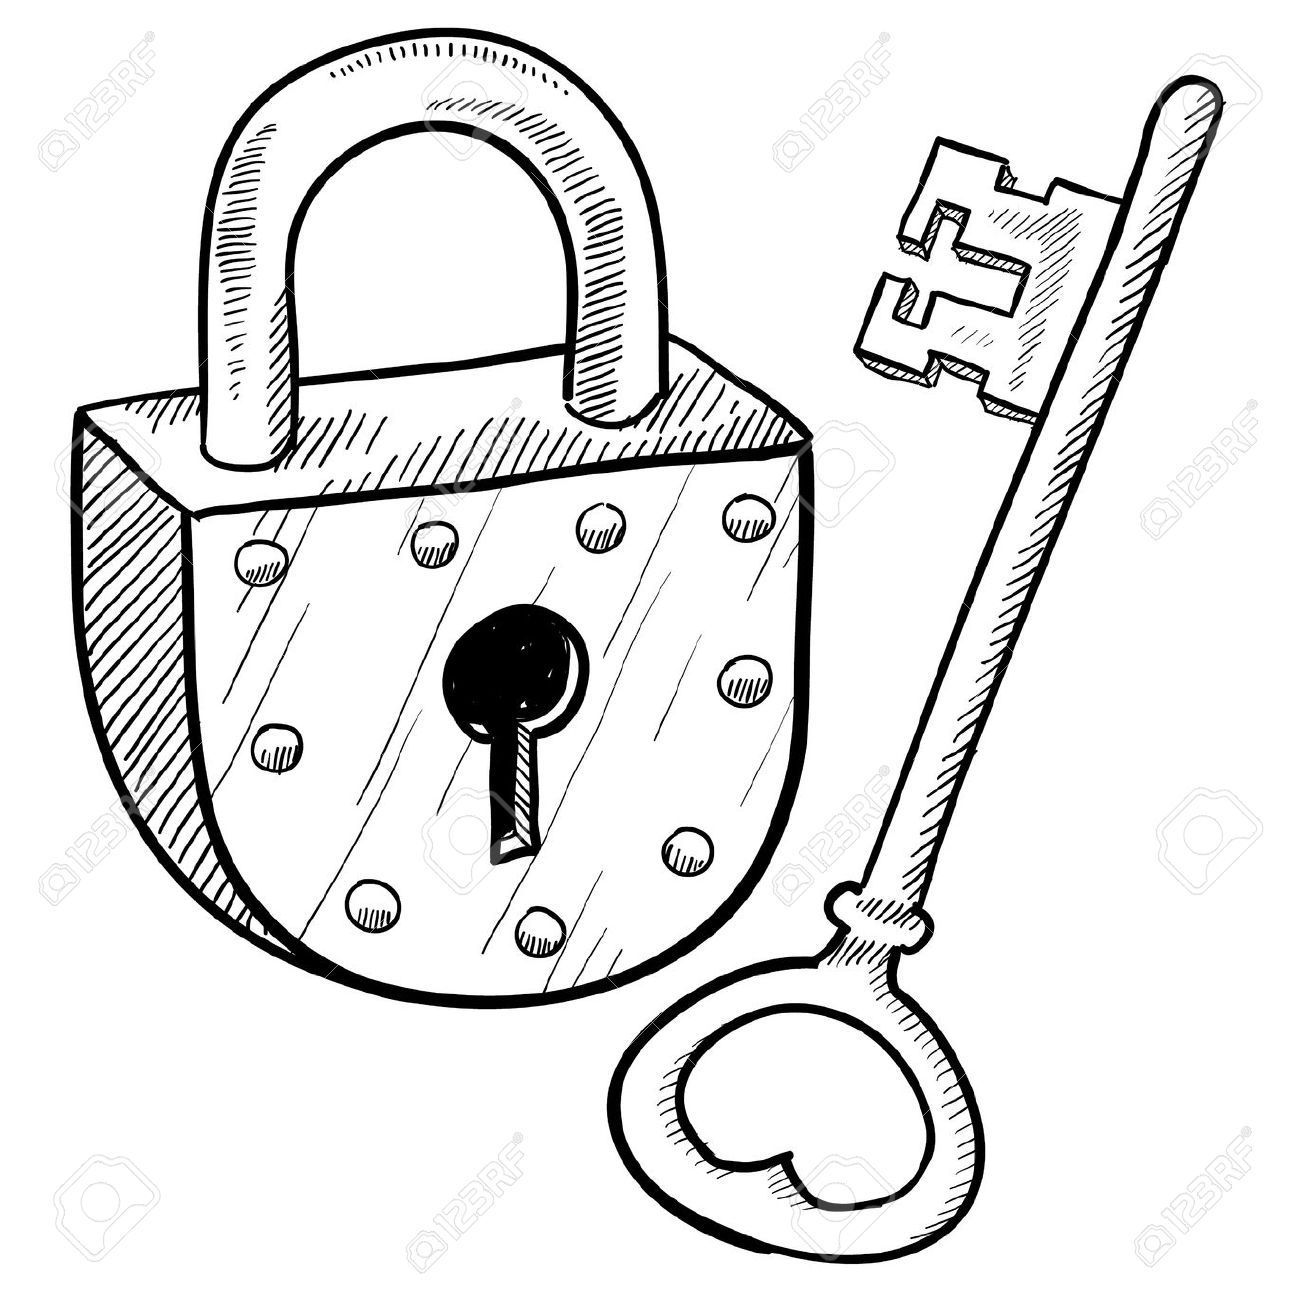 Padlock Stock Illustrations, Cliparts And Royalty Free.